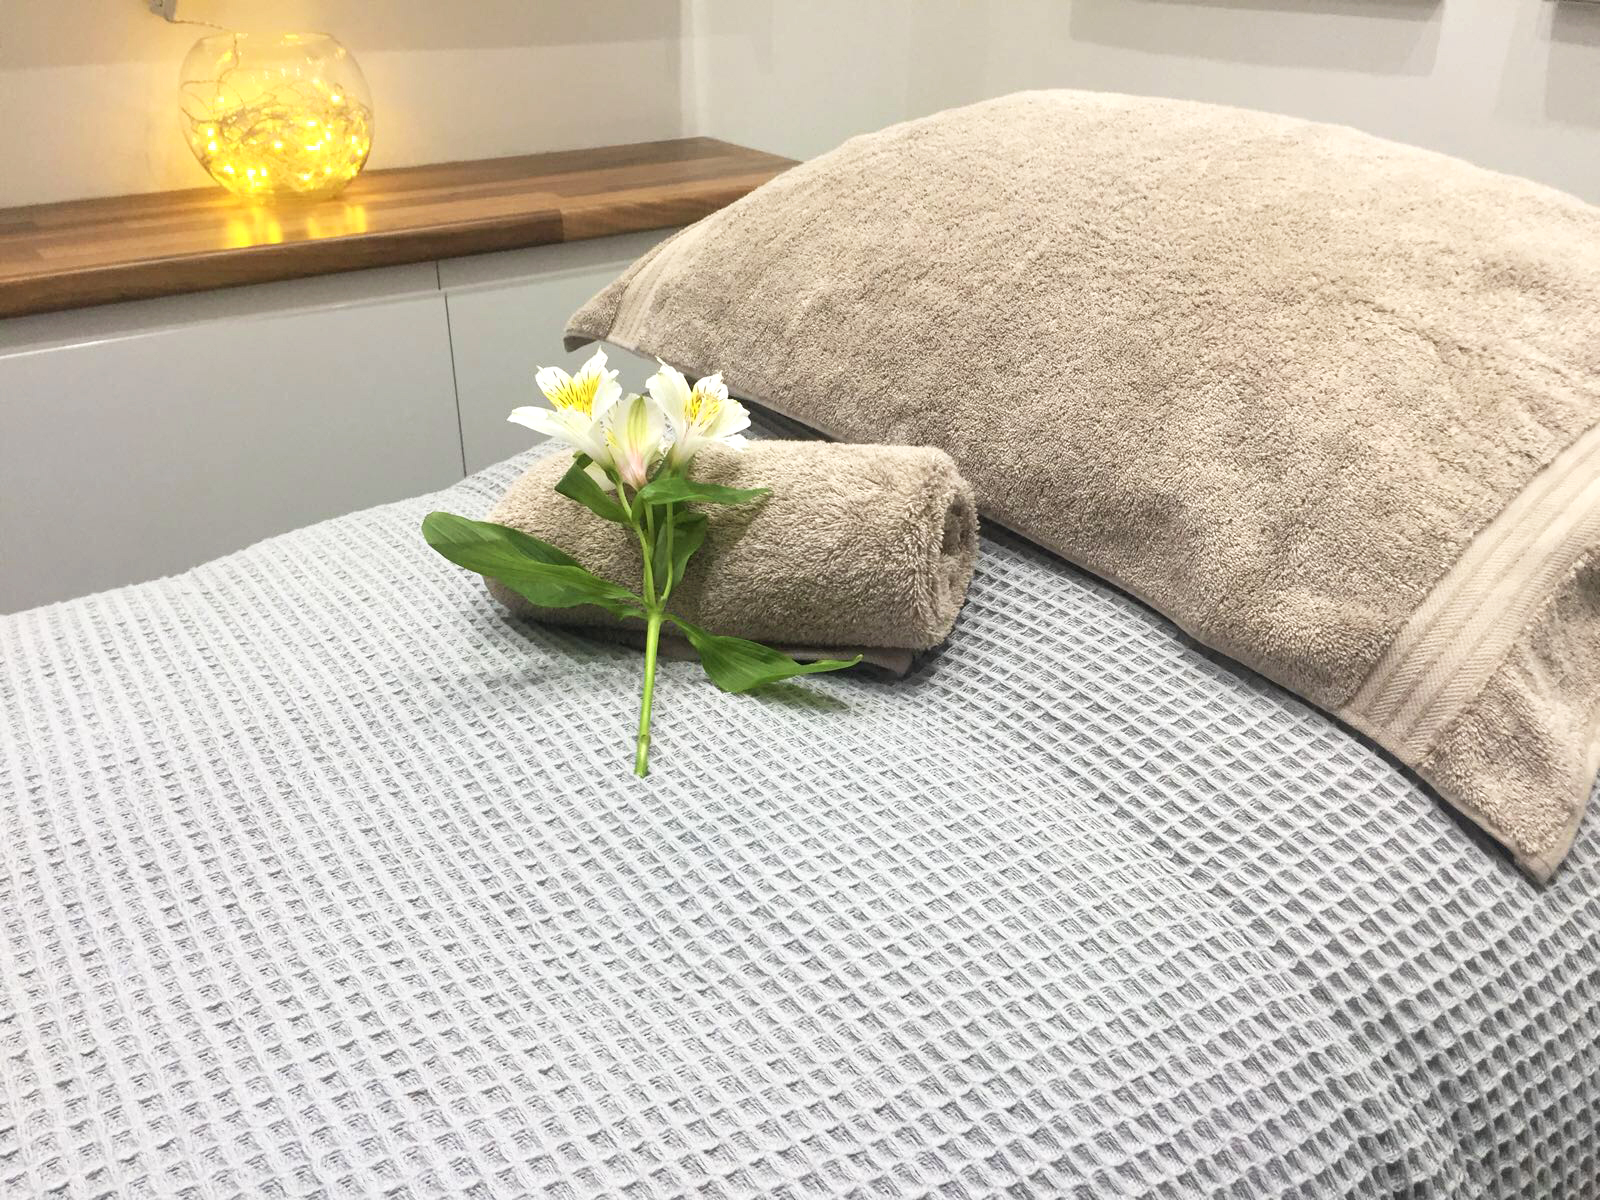 Comfort and Relaxation are all part of the Bearsden Beauty Experience